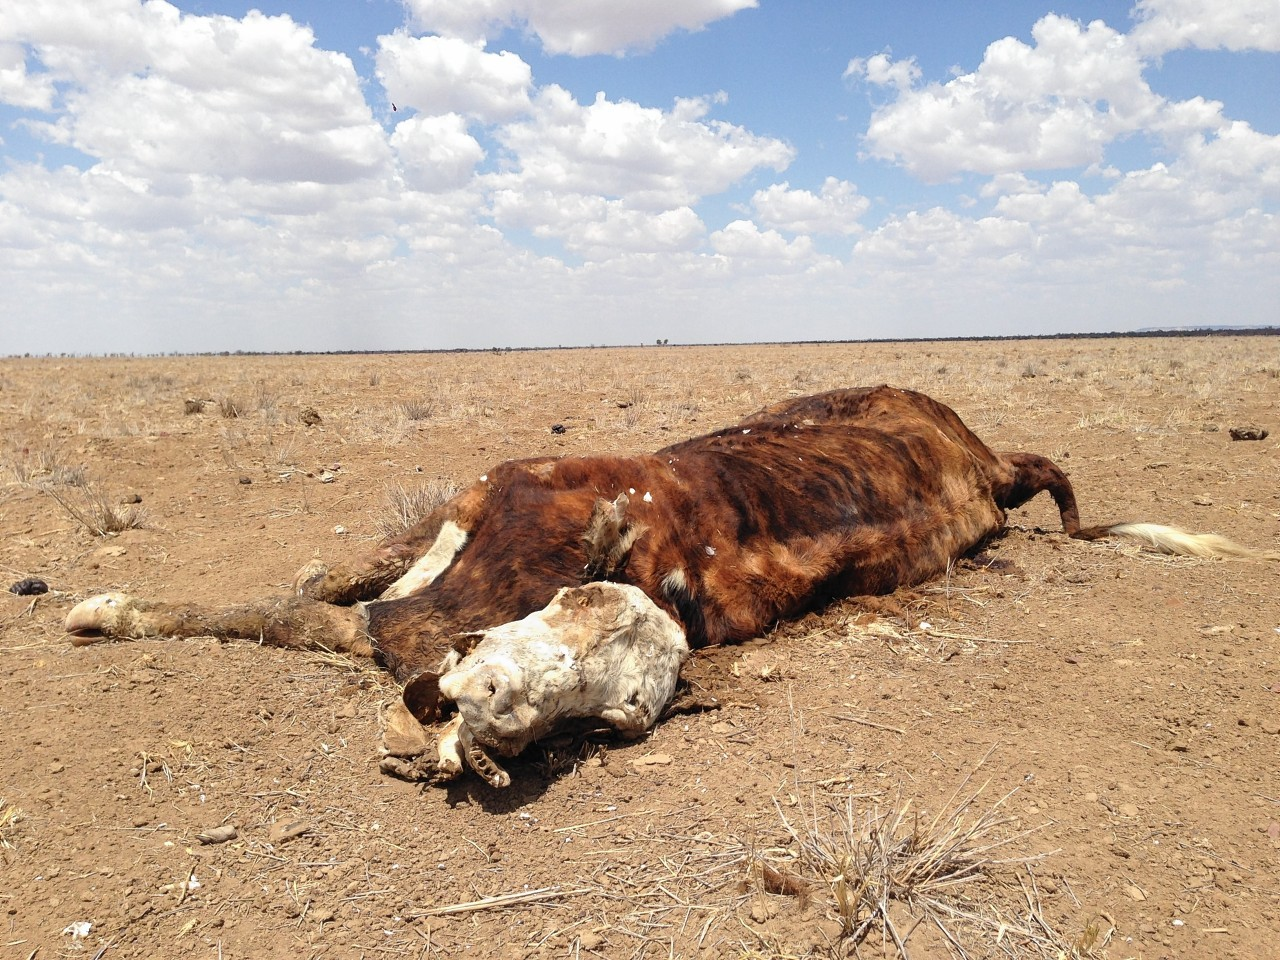 Cattle are struggling to survive the drought conditions